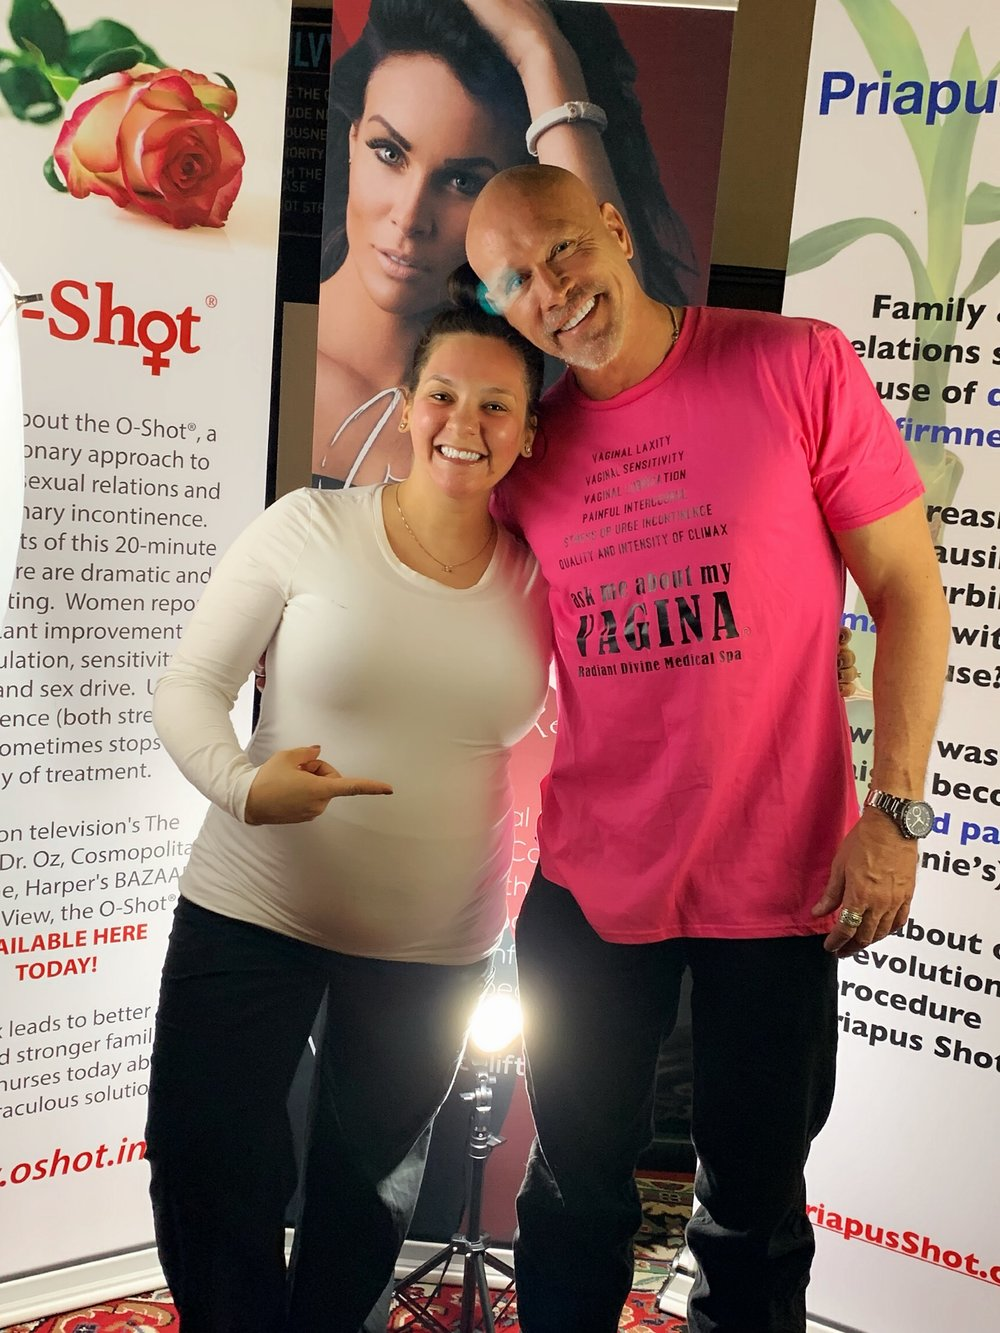 Even dr charles runnles (Creator to the vampire facial) loves our t-shirts! Just ask our Cnp Kyla westrick!